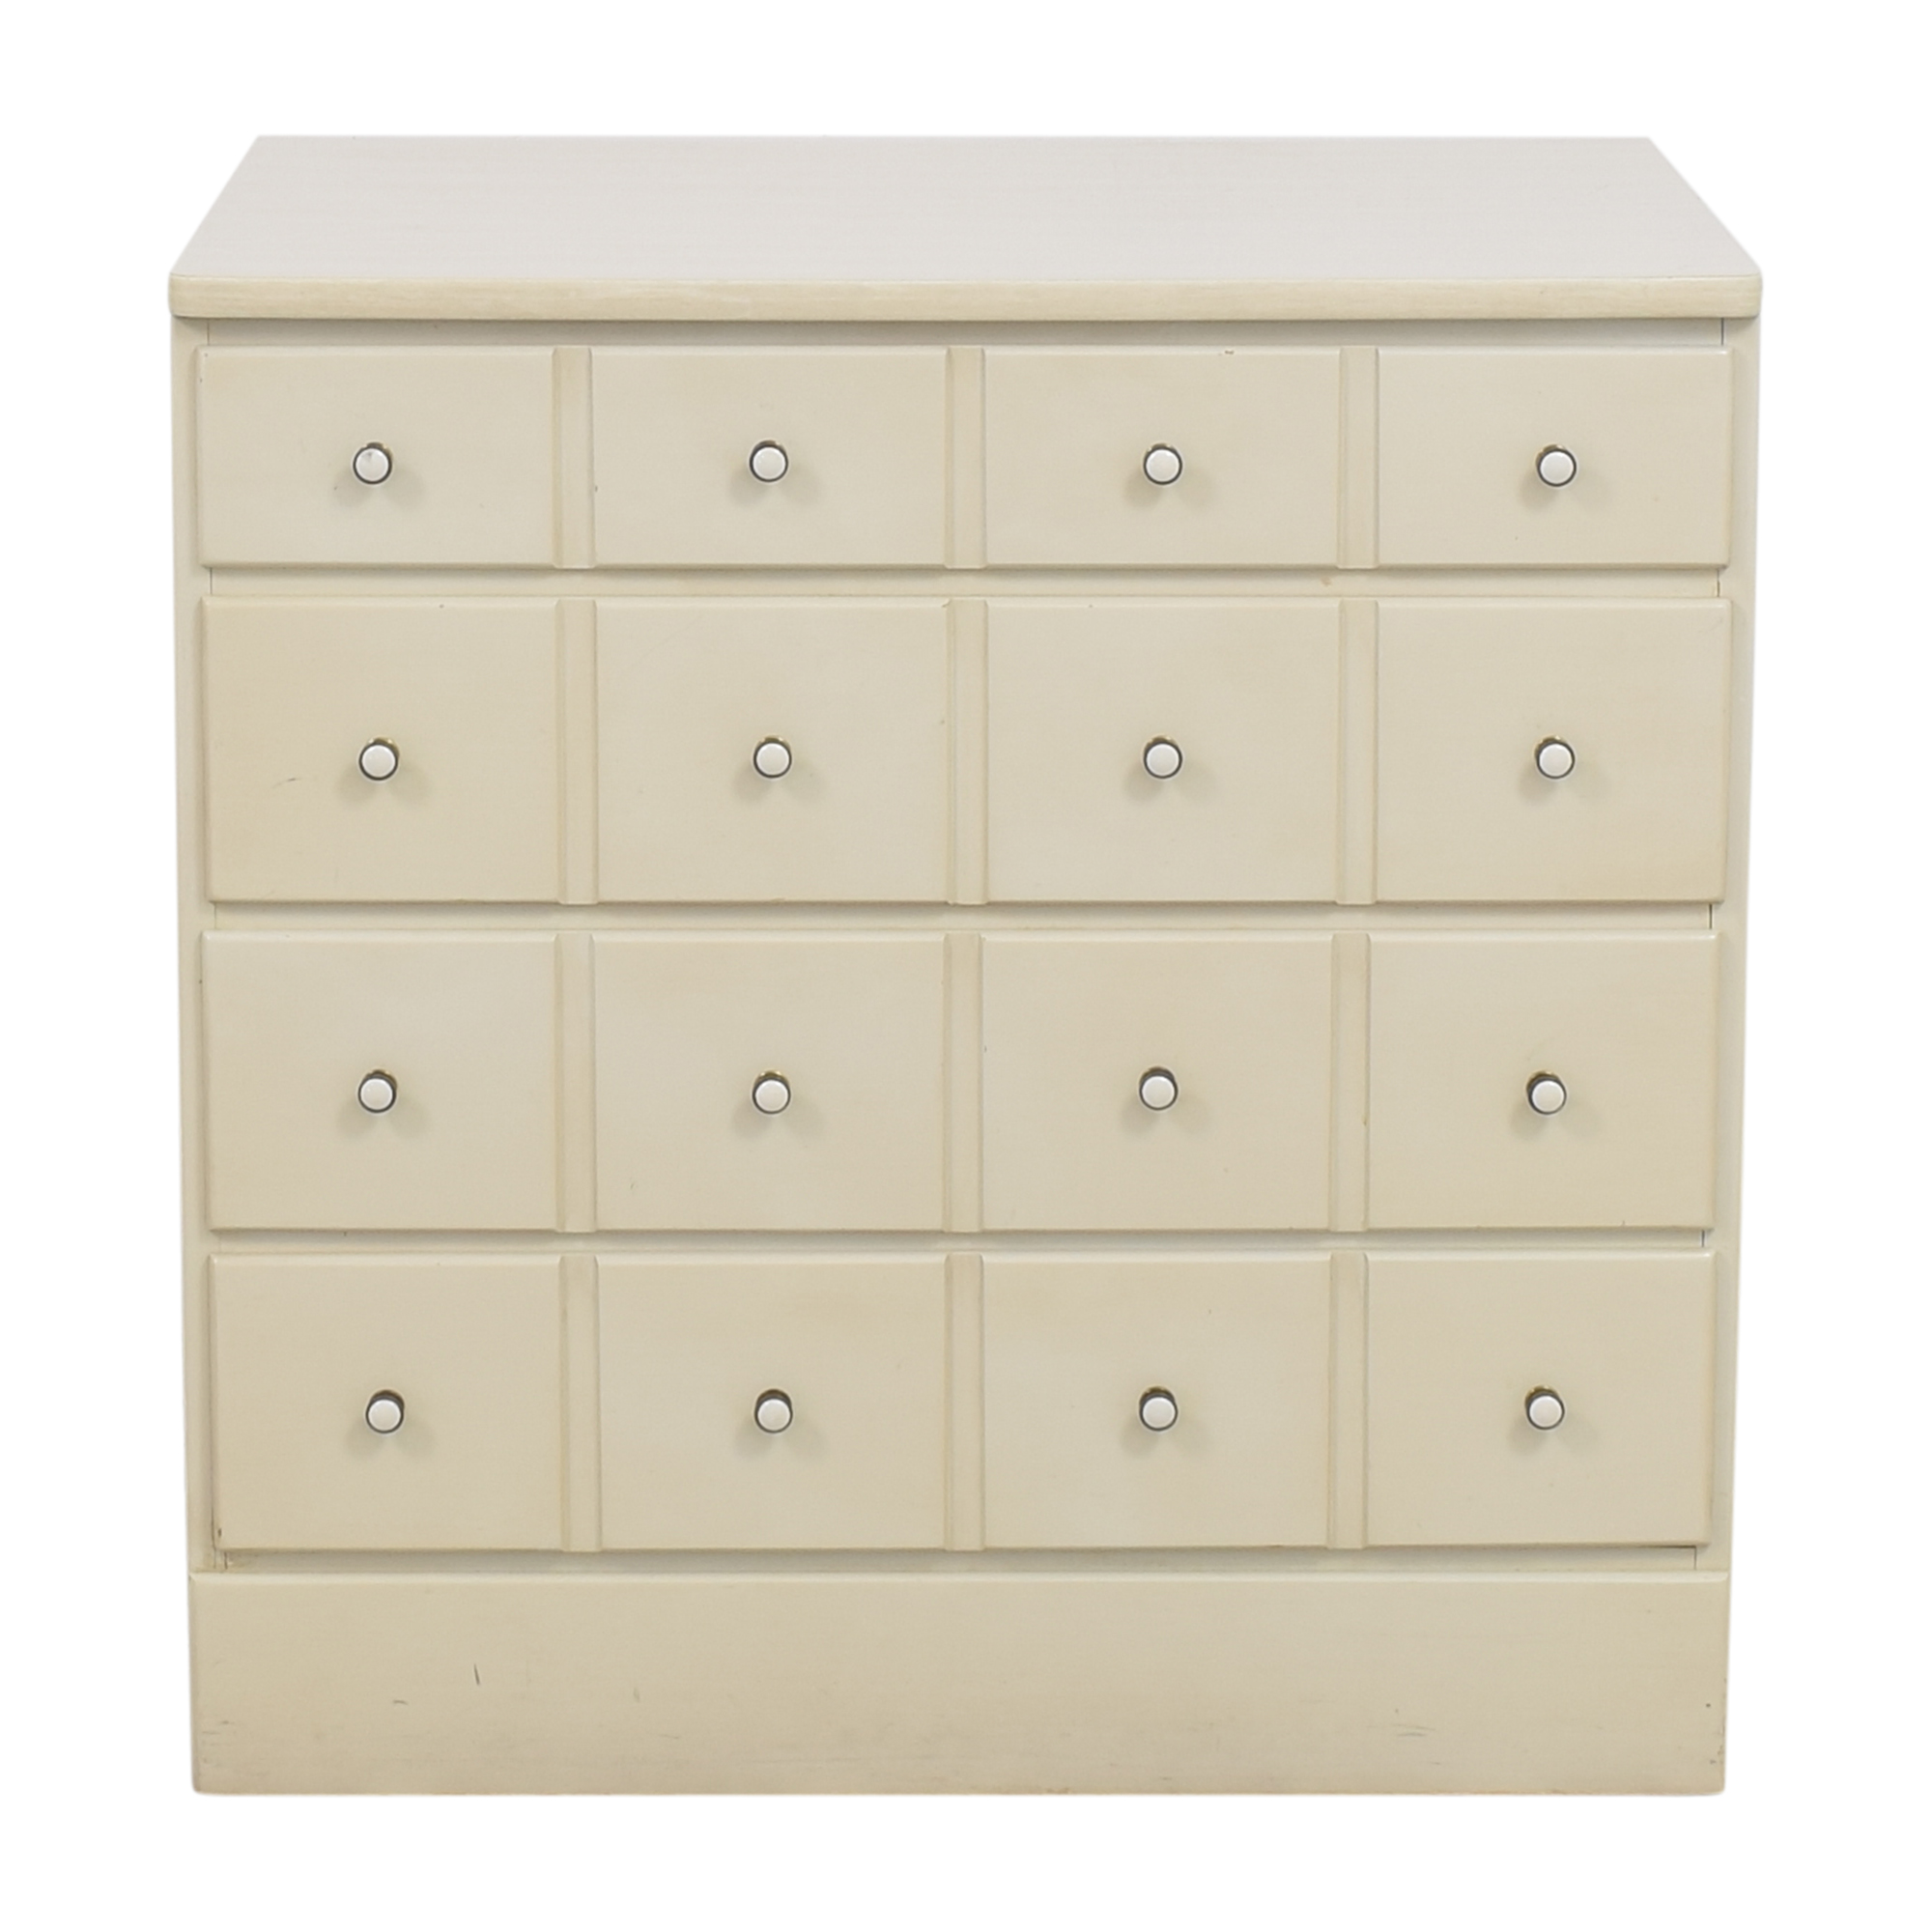 Ethan Allen Ethan Allen Apothecary Style Four Drawer Dresser ct